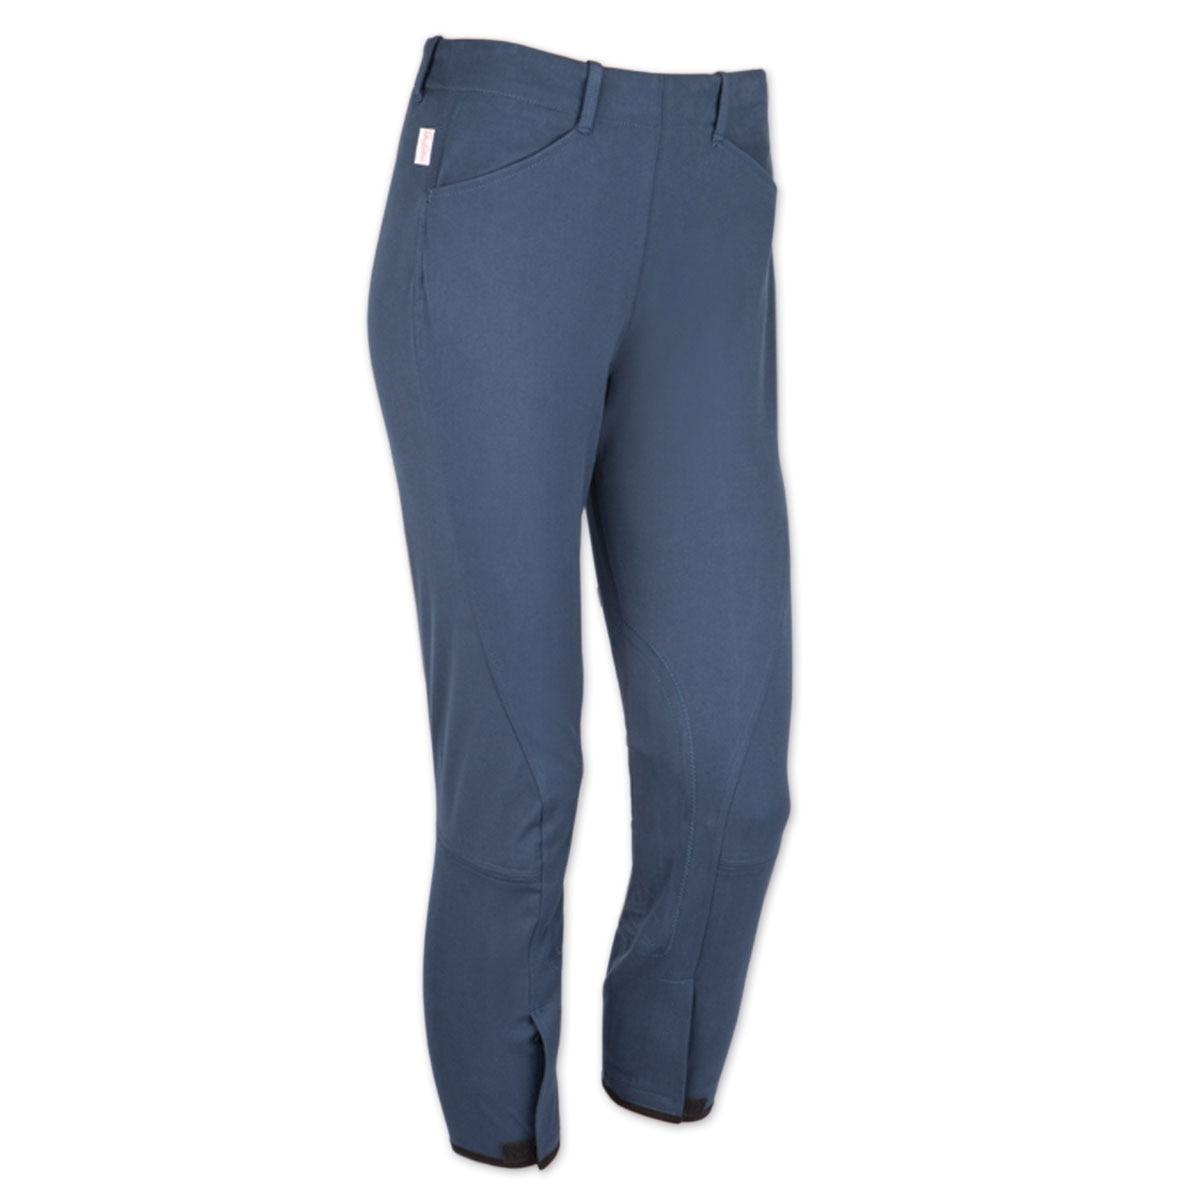 The Tailored Sportsman Girl's TS Low-Rise Breech